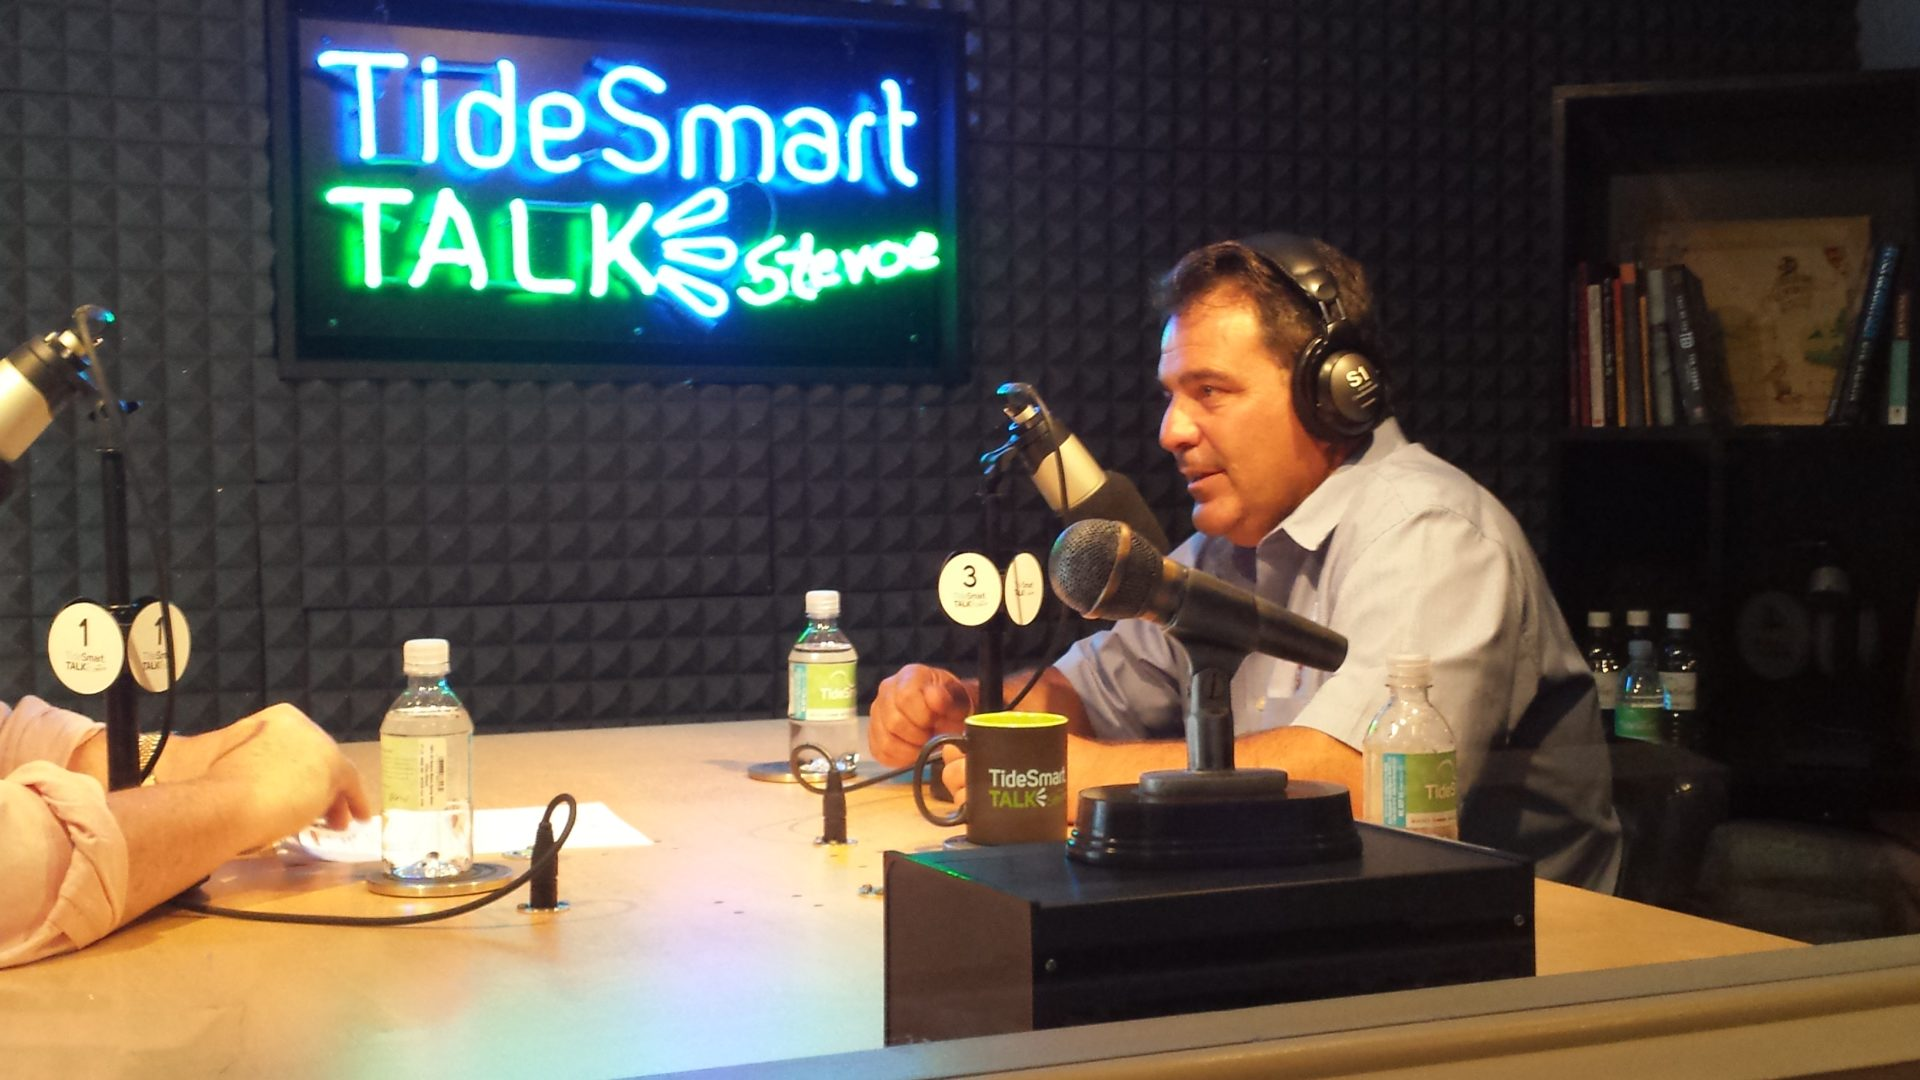 Host of TideSmart Talk with Stevoe, Steve Woods, welcomed Co-Founder of Shipyard Brewing, Fred Forsley.